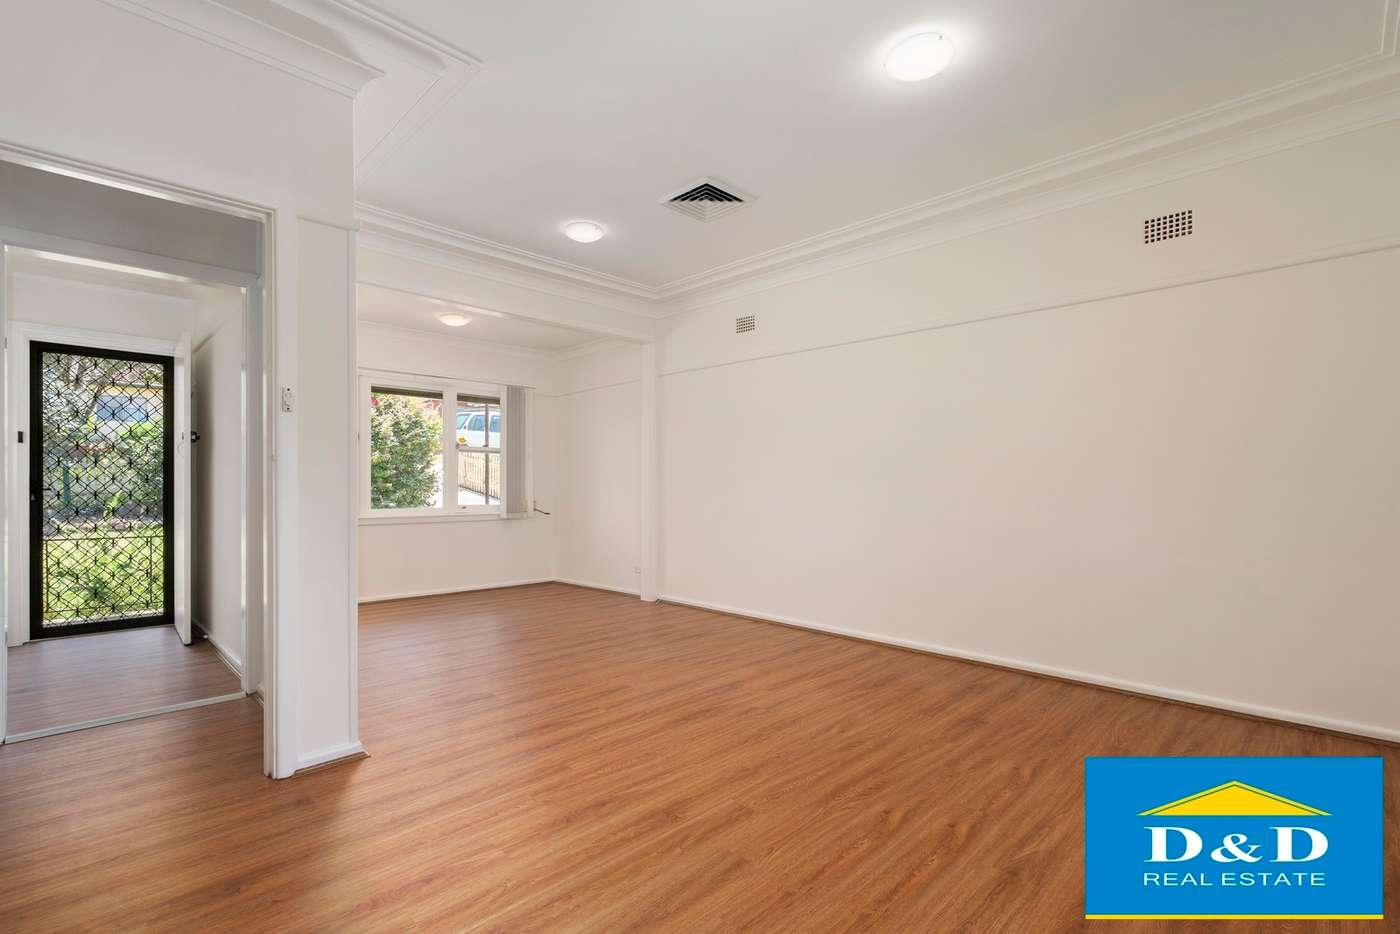 Fifth view of Homely house listing, 17 Ferris Street, North Parramatta NSW 2151